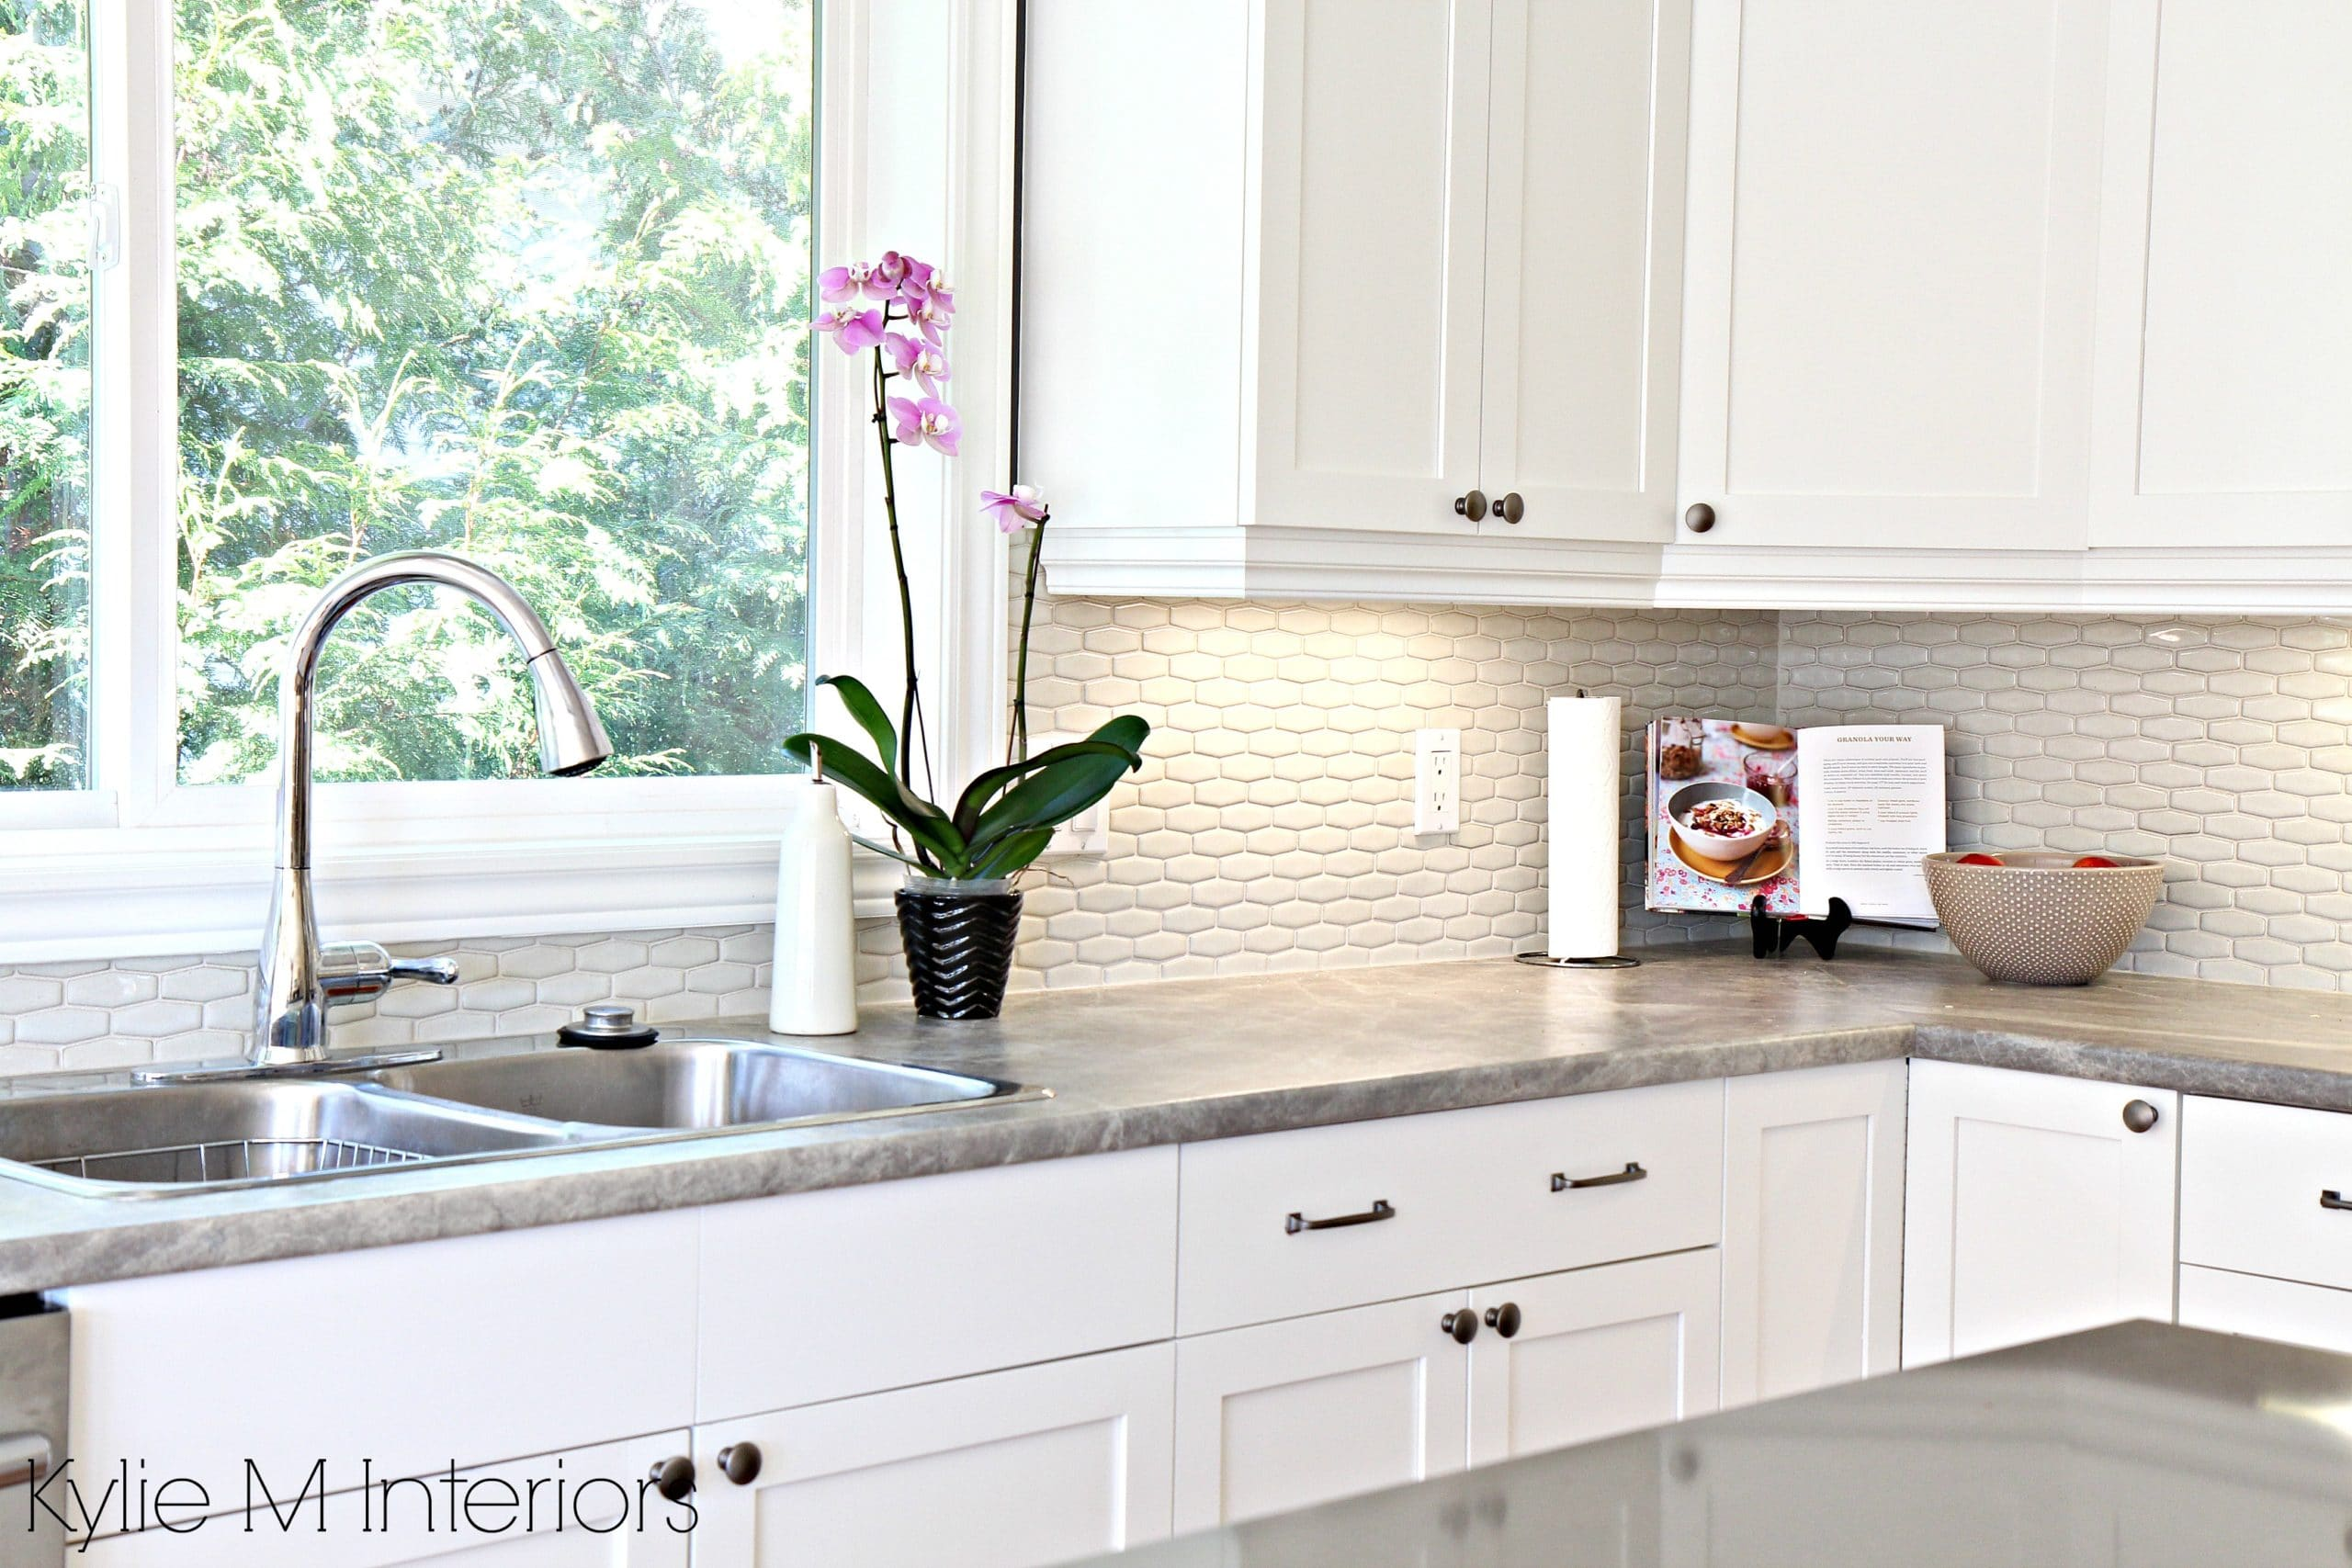 hexagon subway tile backsplash. Maple cabinets painted ... on What Color Countertops Go With Maple Cabinets  id=87437